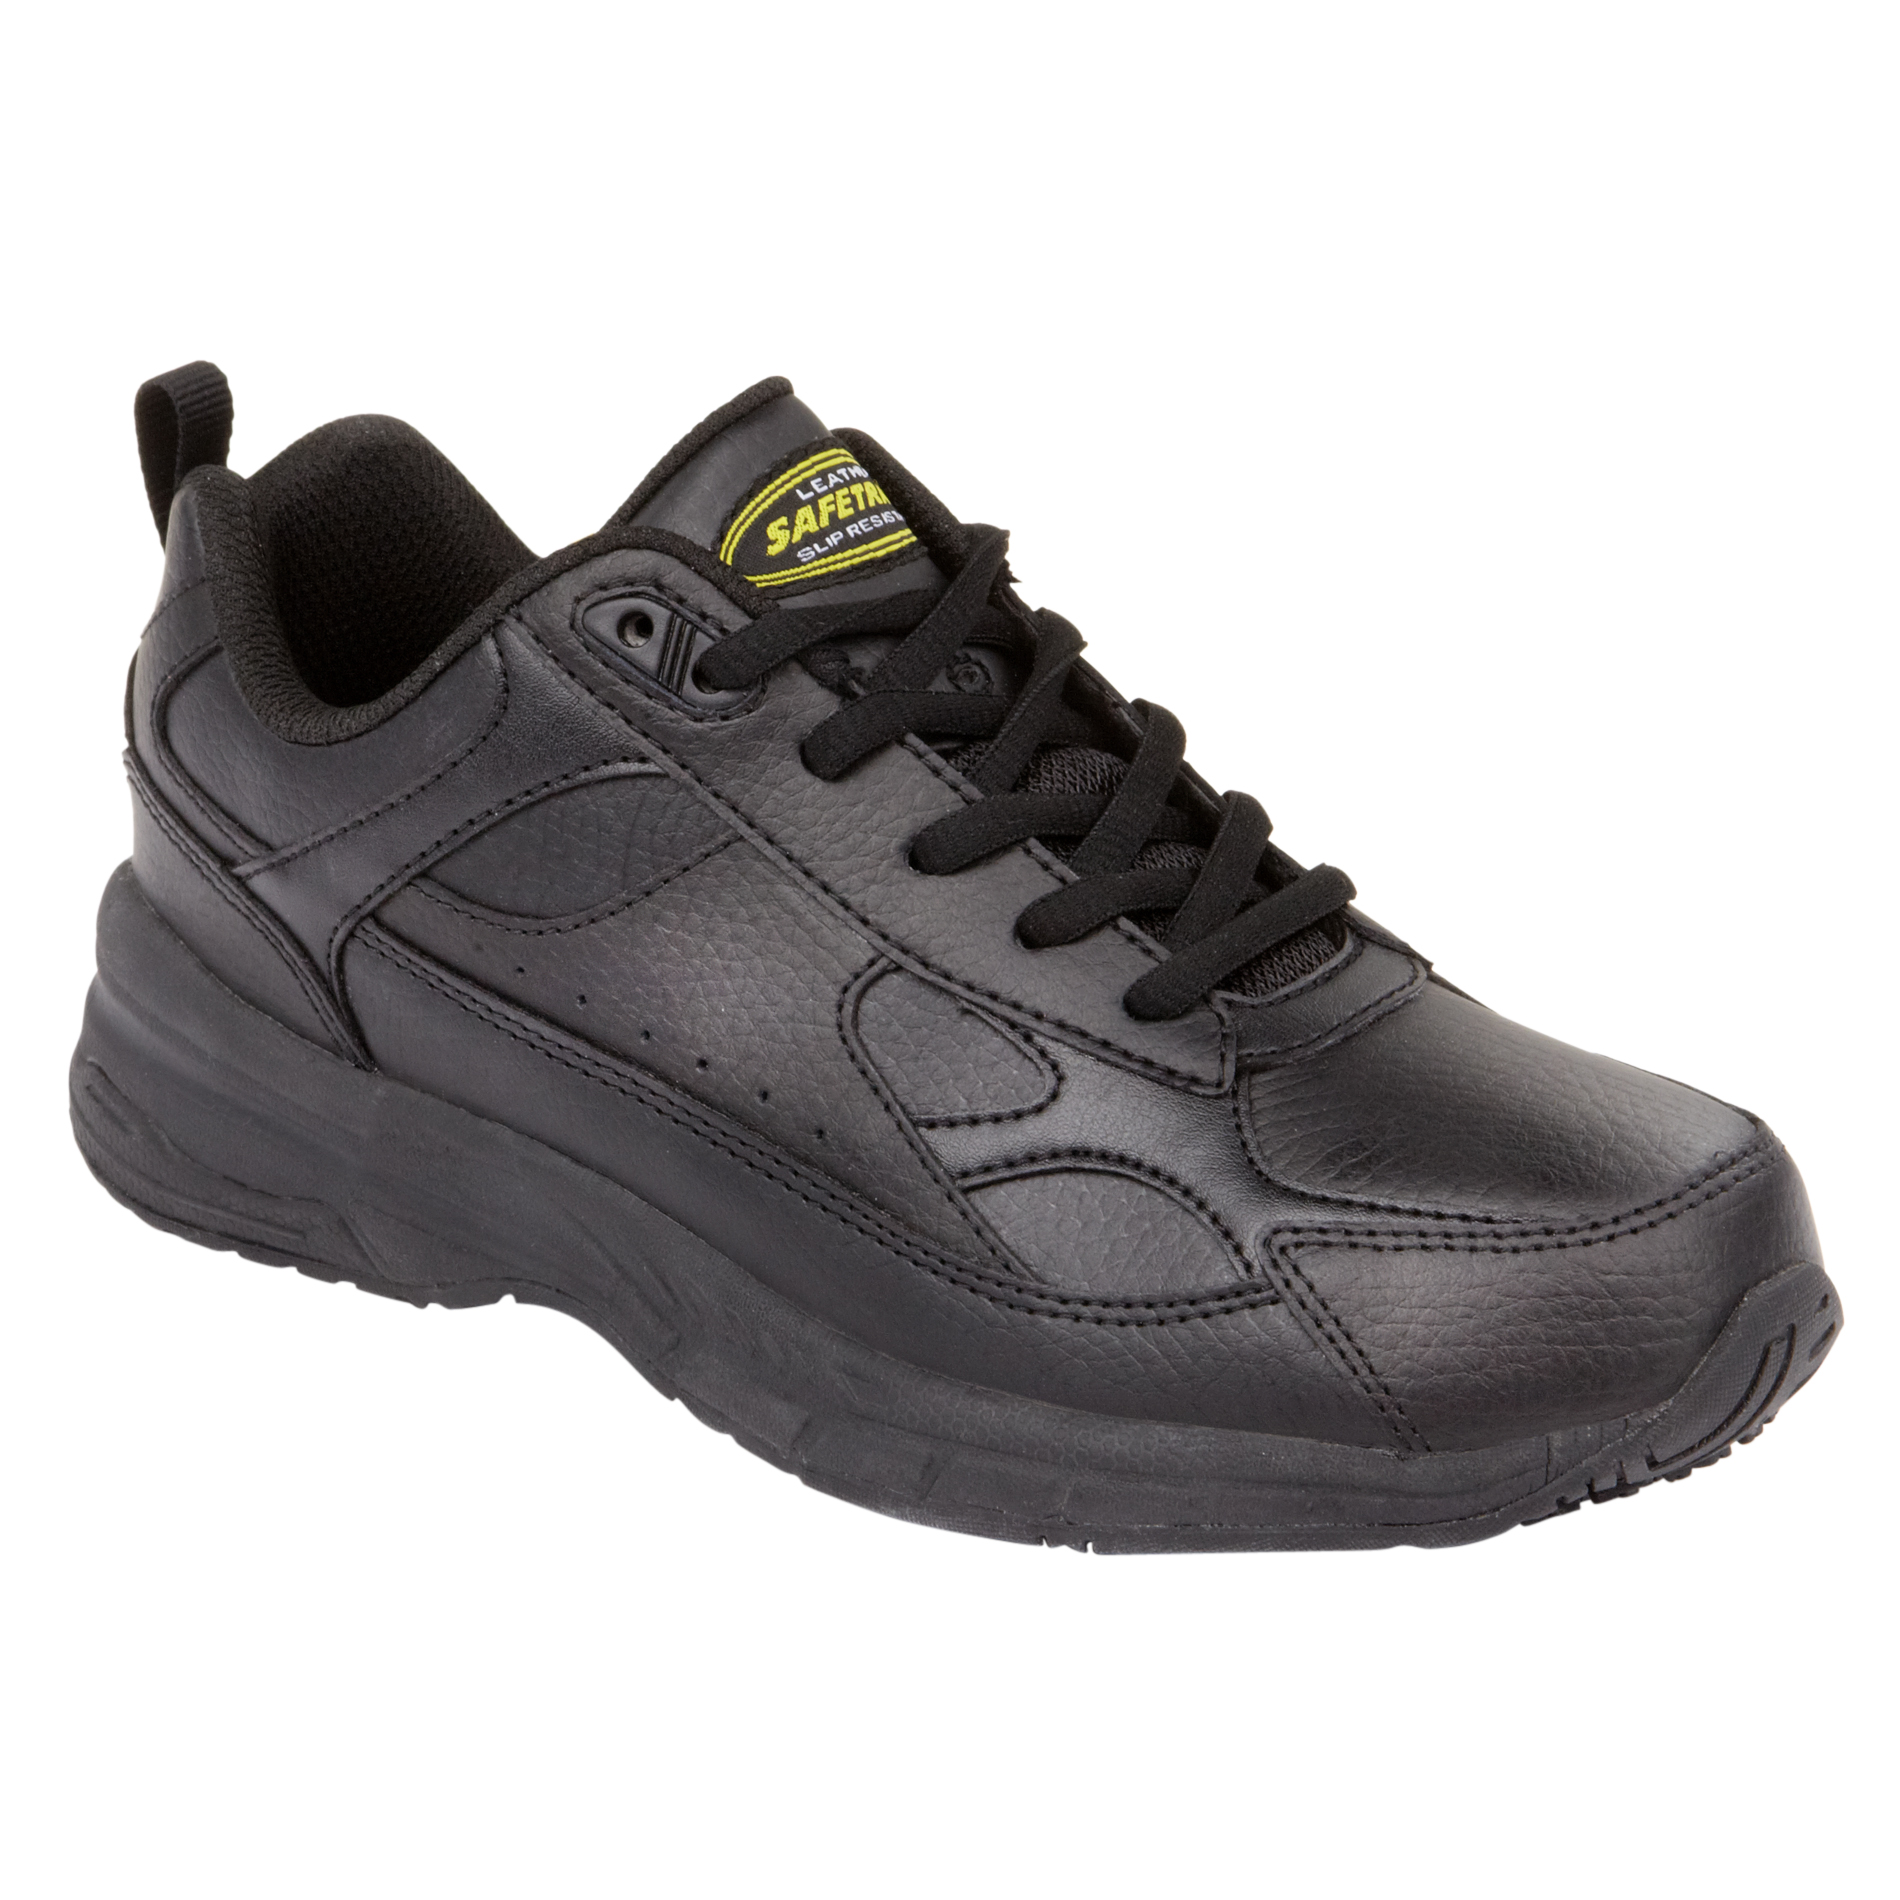 Womens Black Non Skid Work Shoes